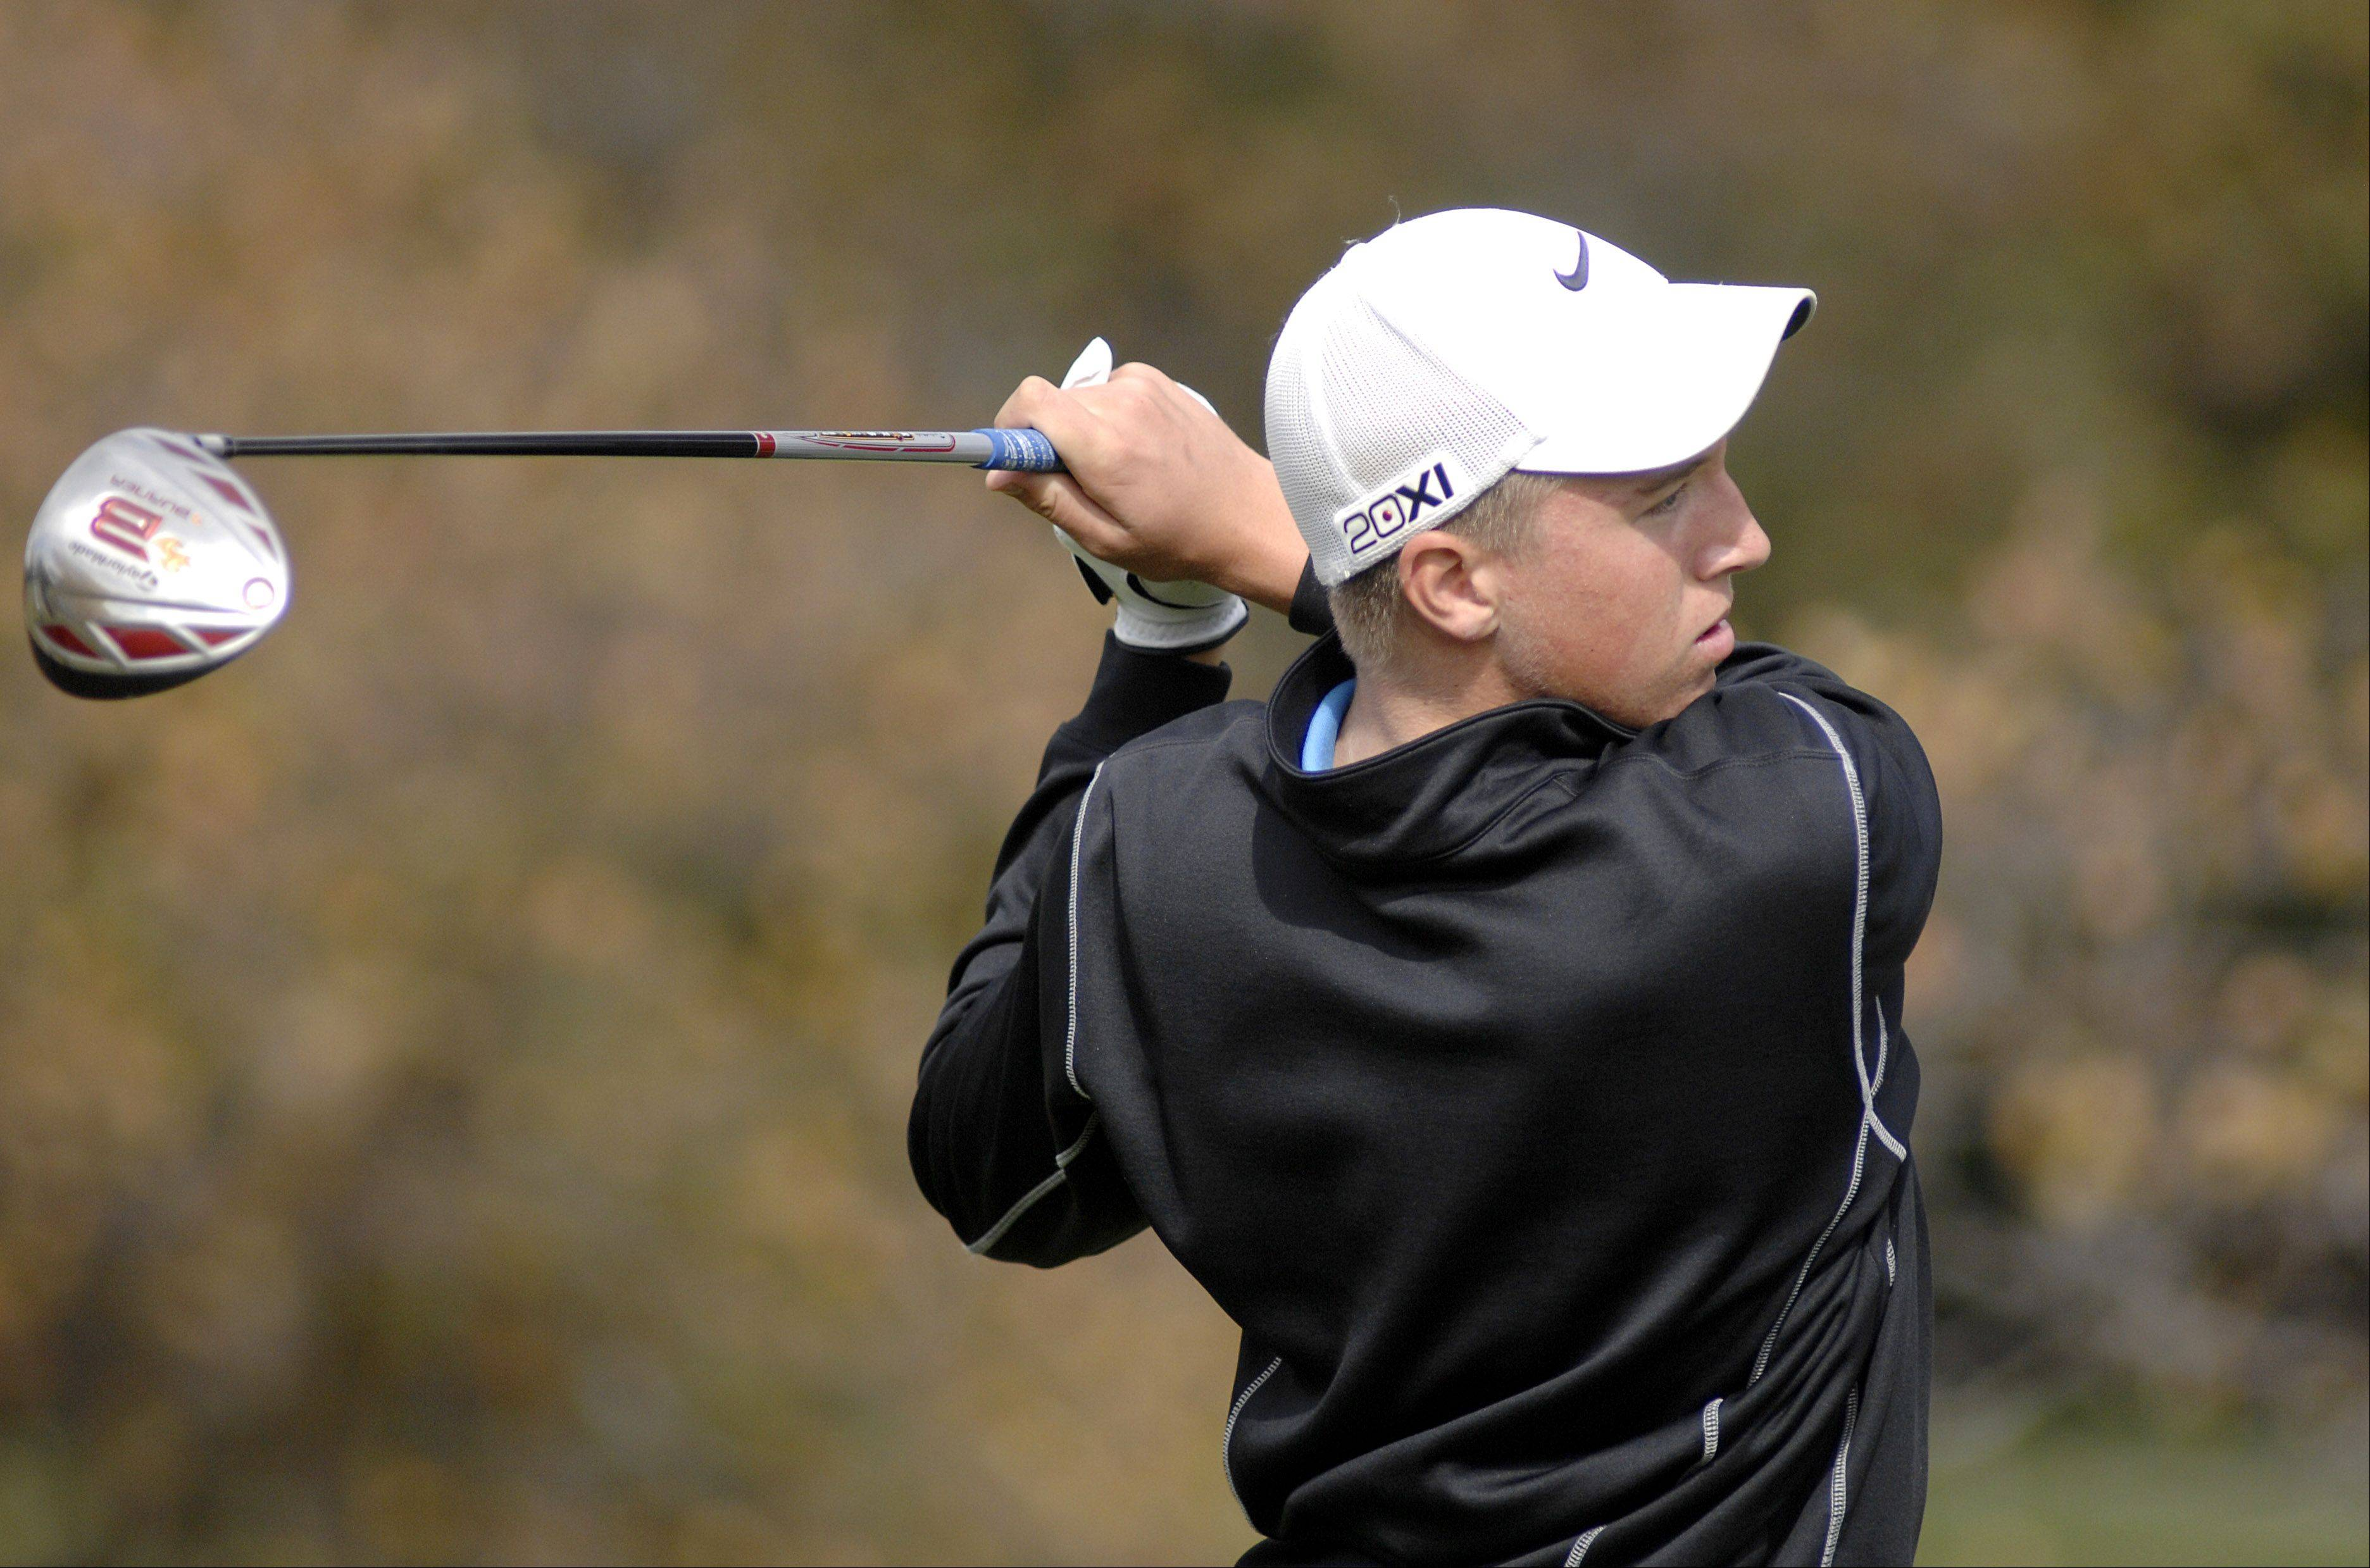 Dundee-Crown's Brenton Barrett tees off at the twelfth hole in the Fox Valley Conference tournament at Crystal Woods Golf Course in Woodstock on Thursday, September 27.